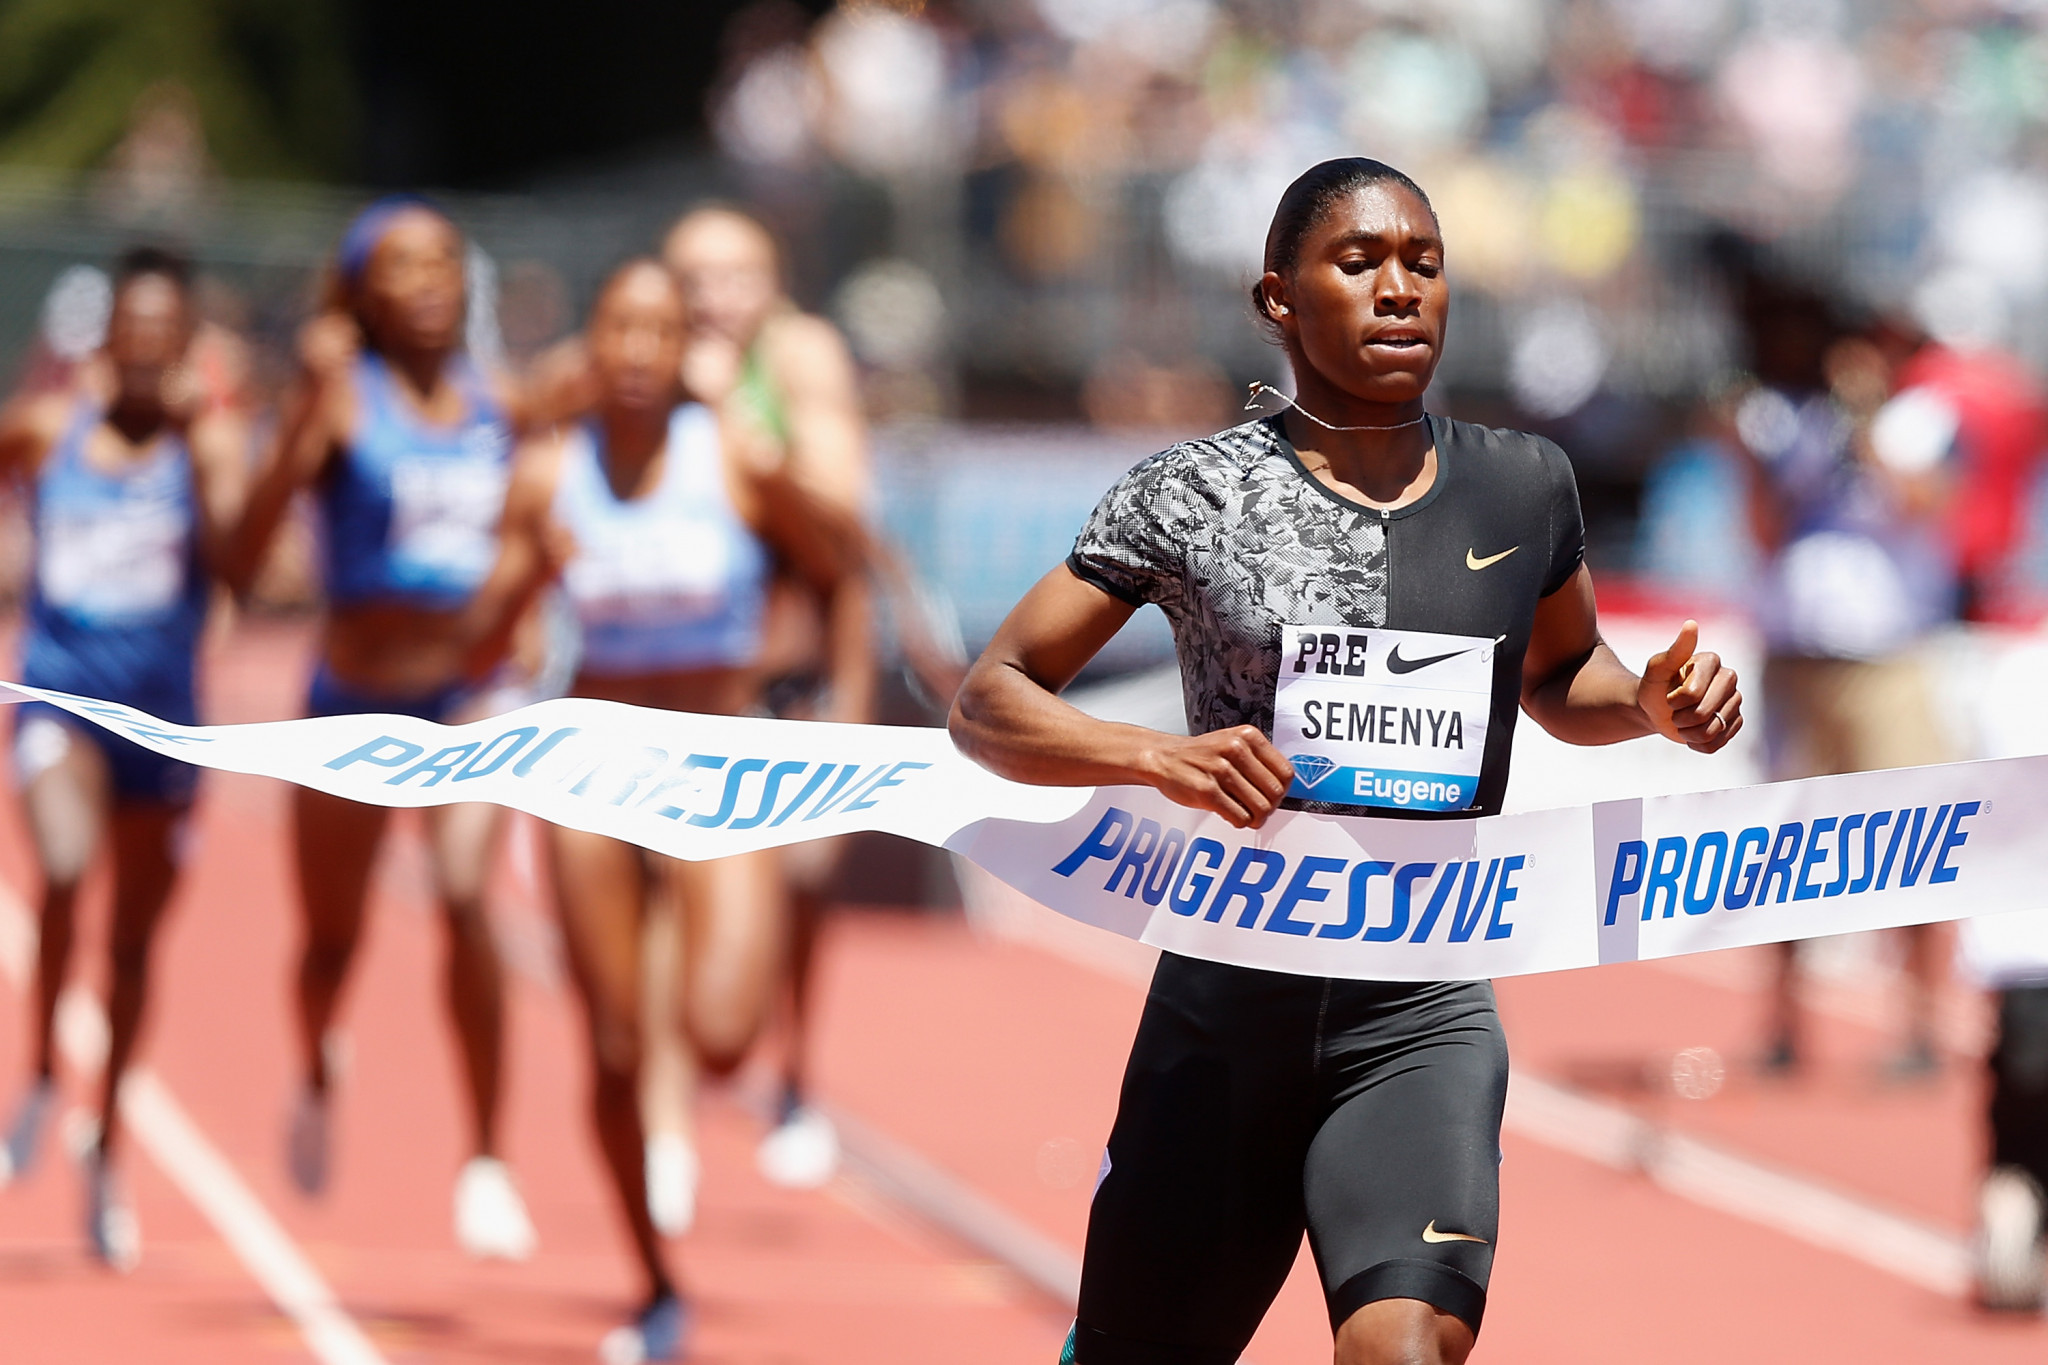 Caster Semenya is hoping to reverse a rule that would force her to take testosterone-suppressing medication to compete in her best events ©Getty Images